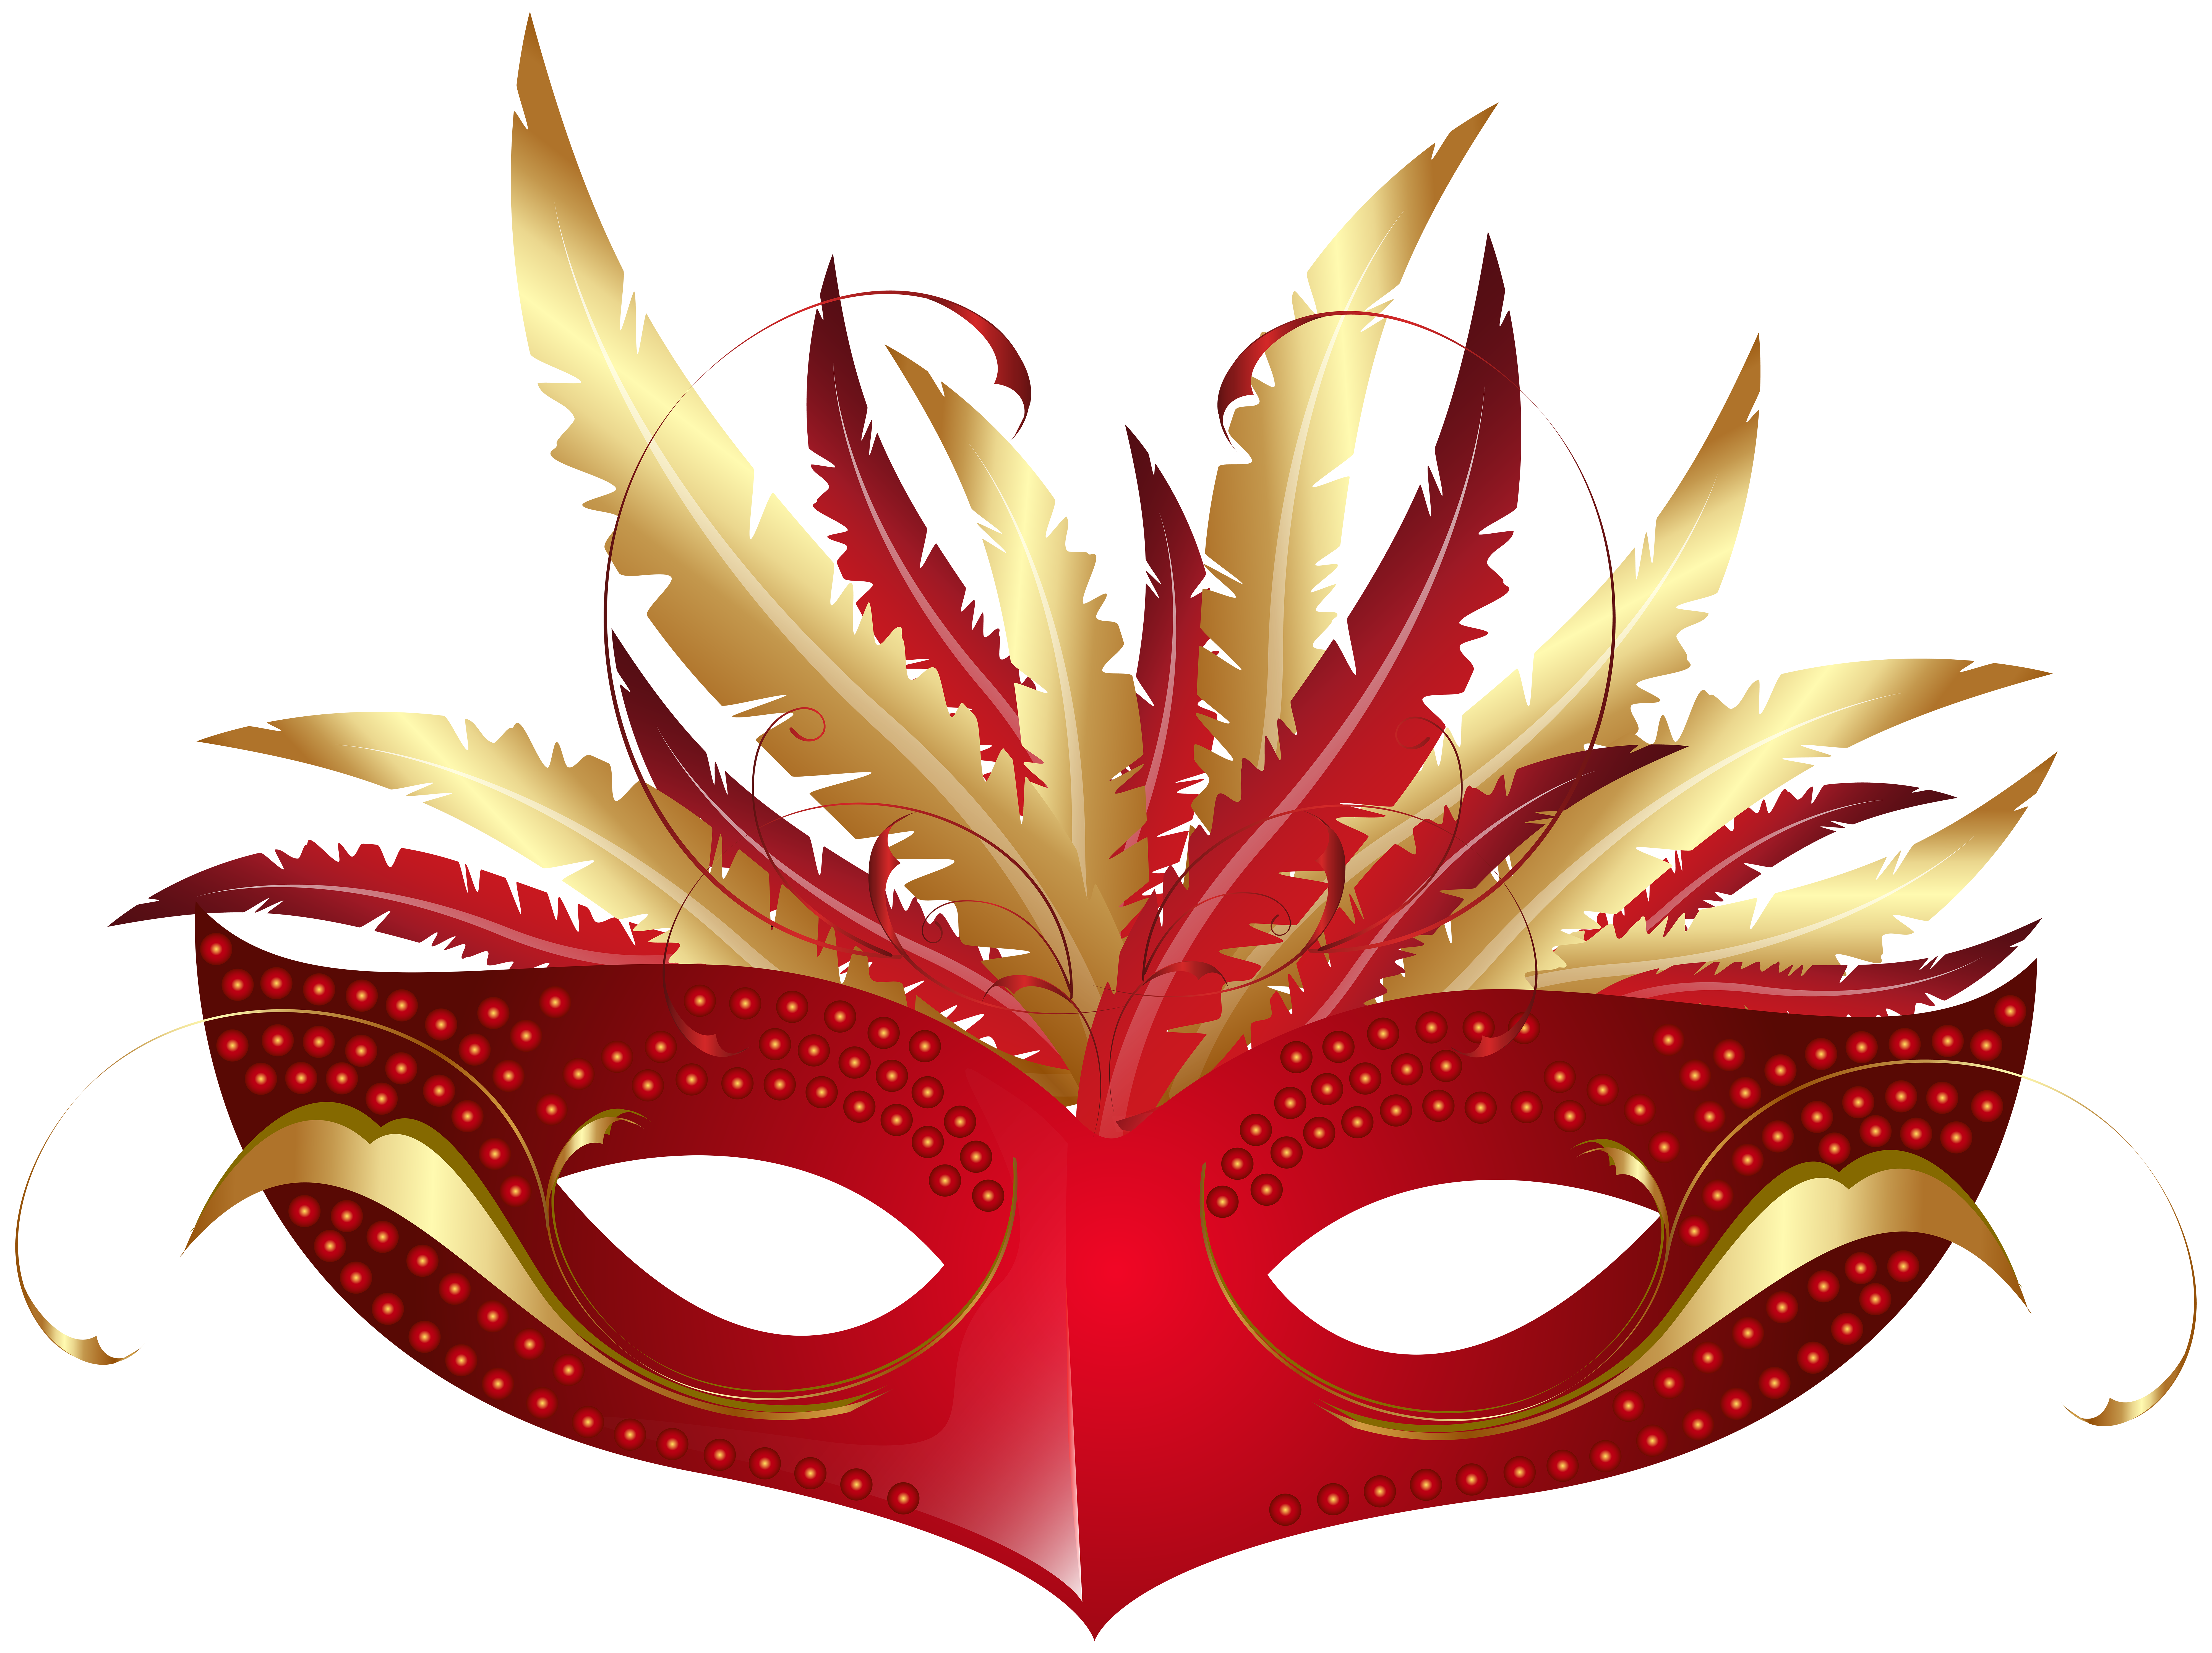 Red Carnival Mask Png Transparent Clip Art Image Gallery Yopriceville High Quality Images And Transparent Png Free Carnival Masks Art Images Free Clip Art